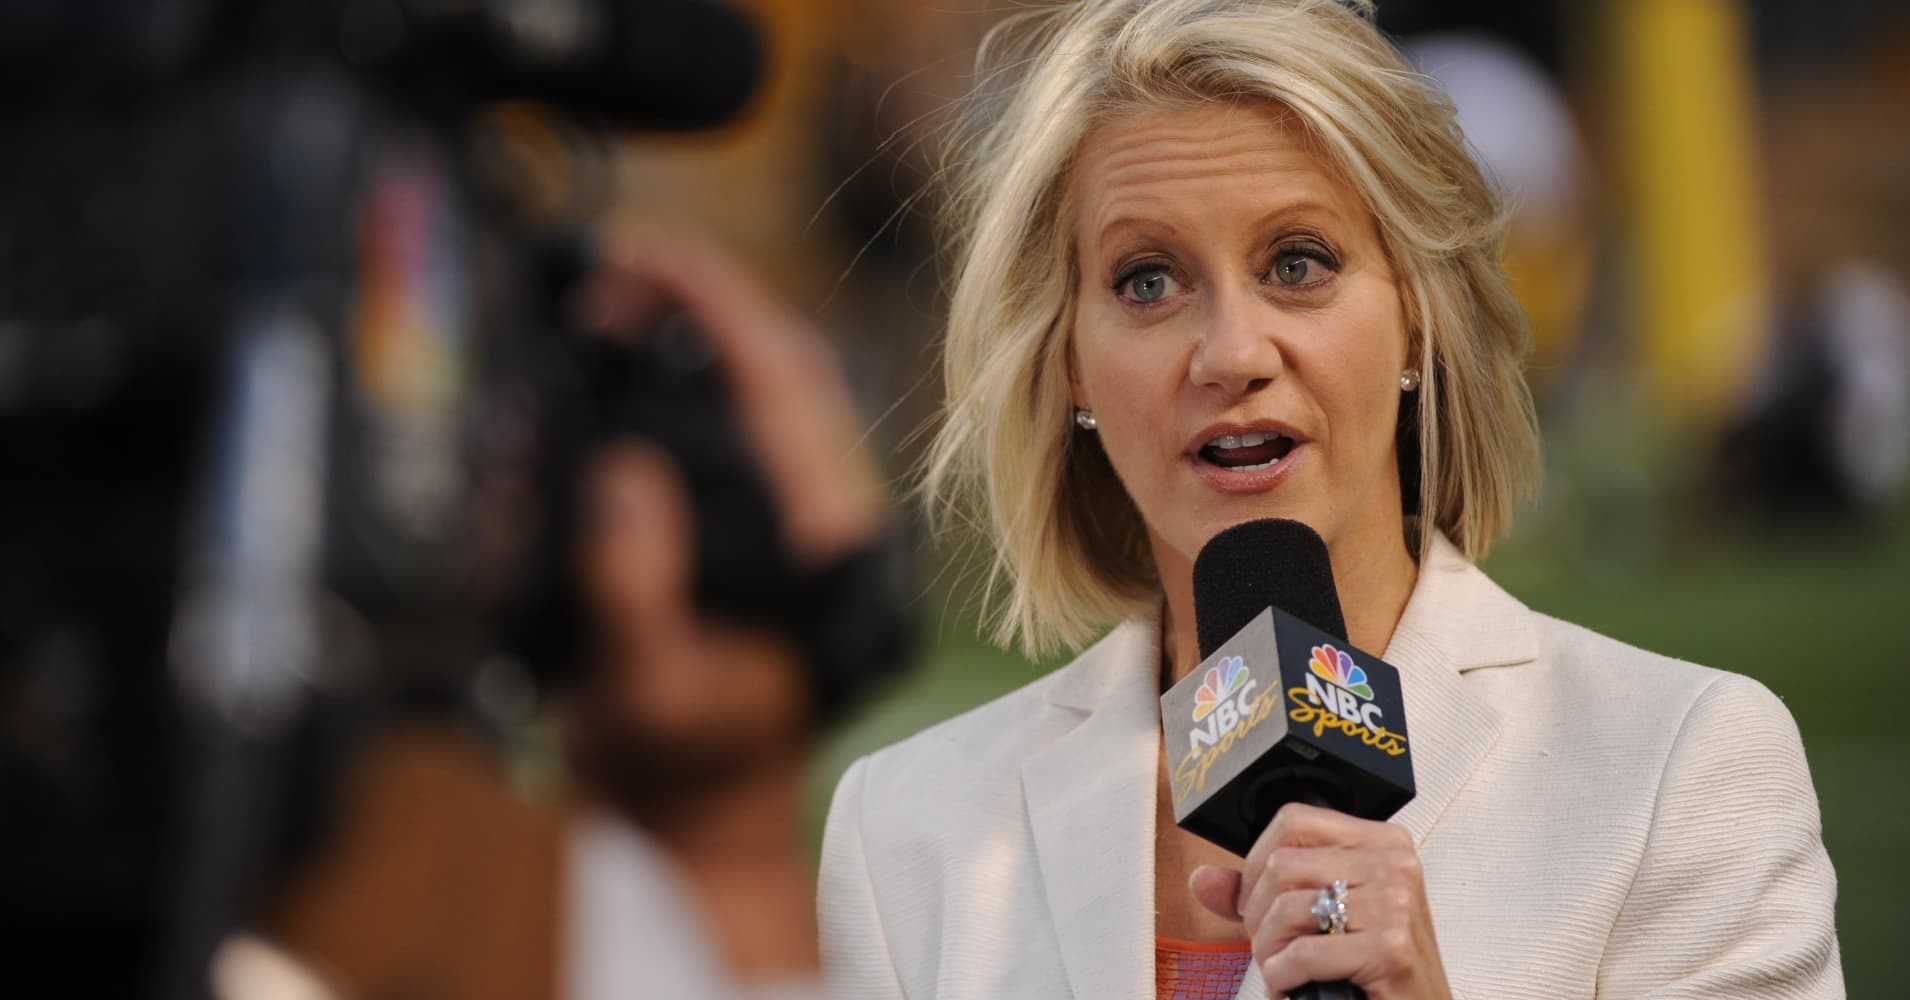 Meet the first all-female broadcast team for NFL games